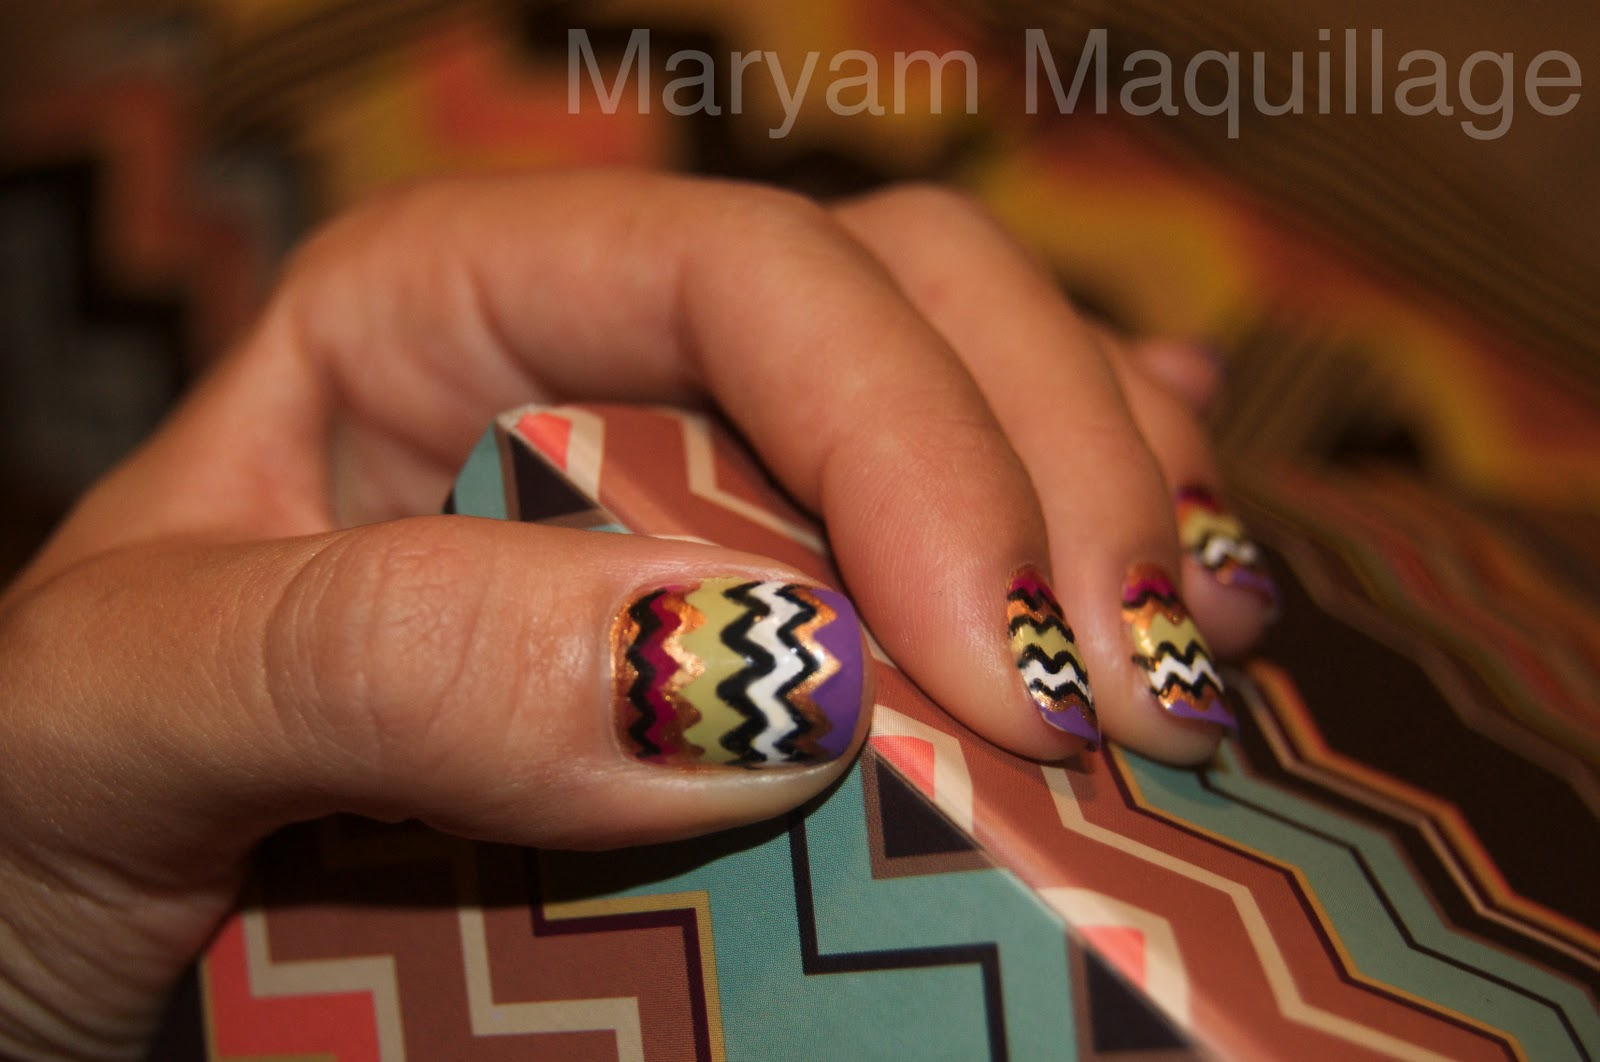 Maryam Maquillage: September 2011